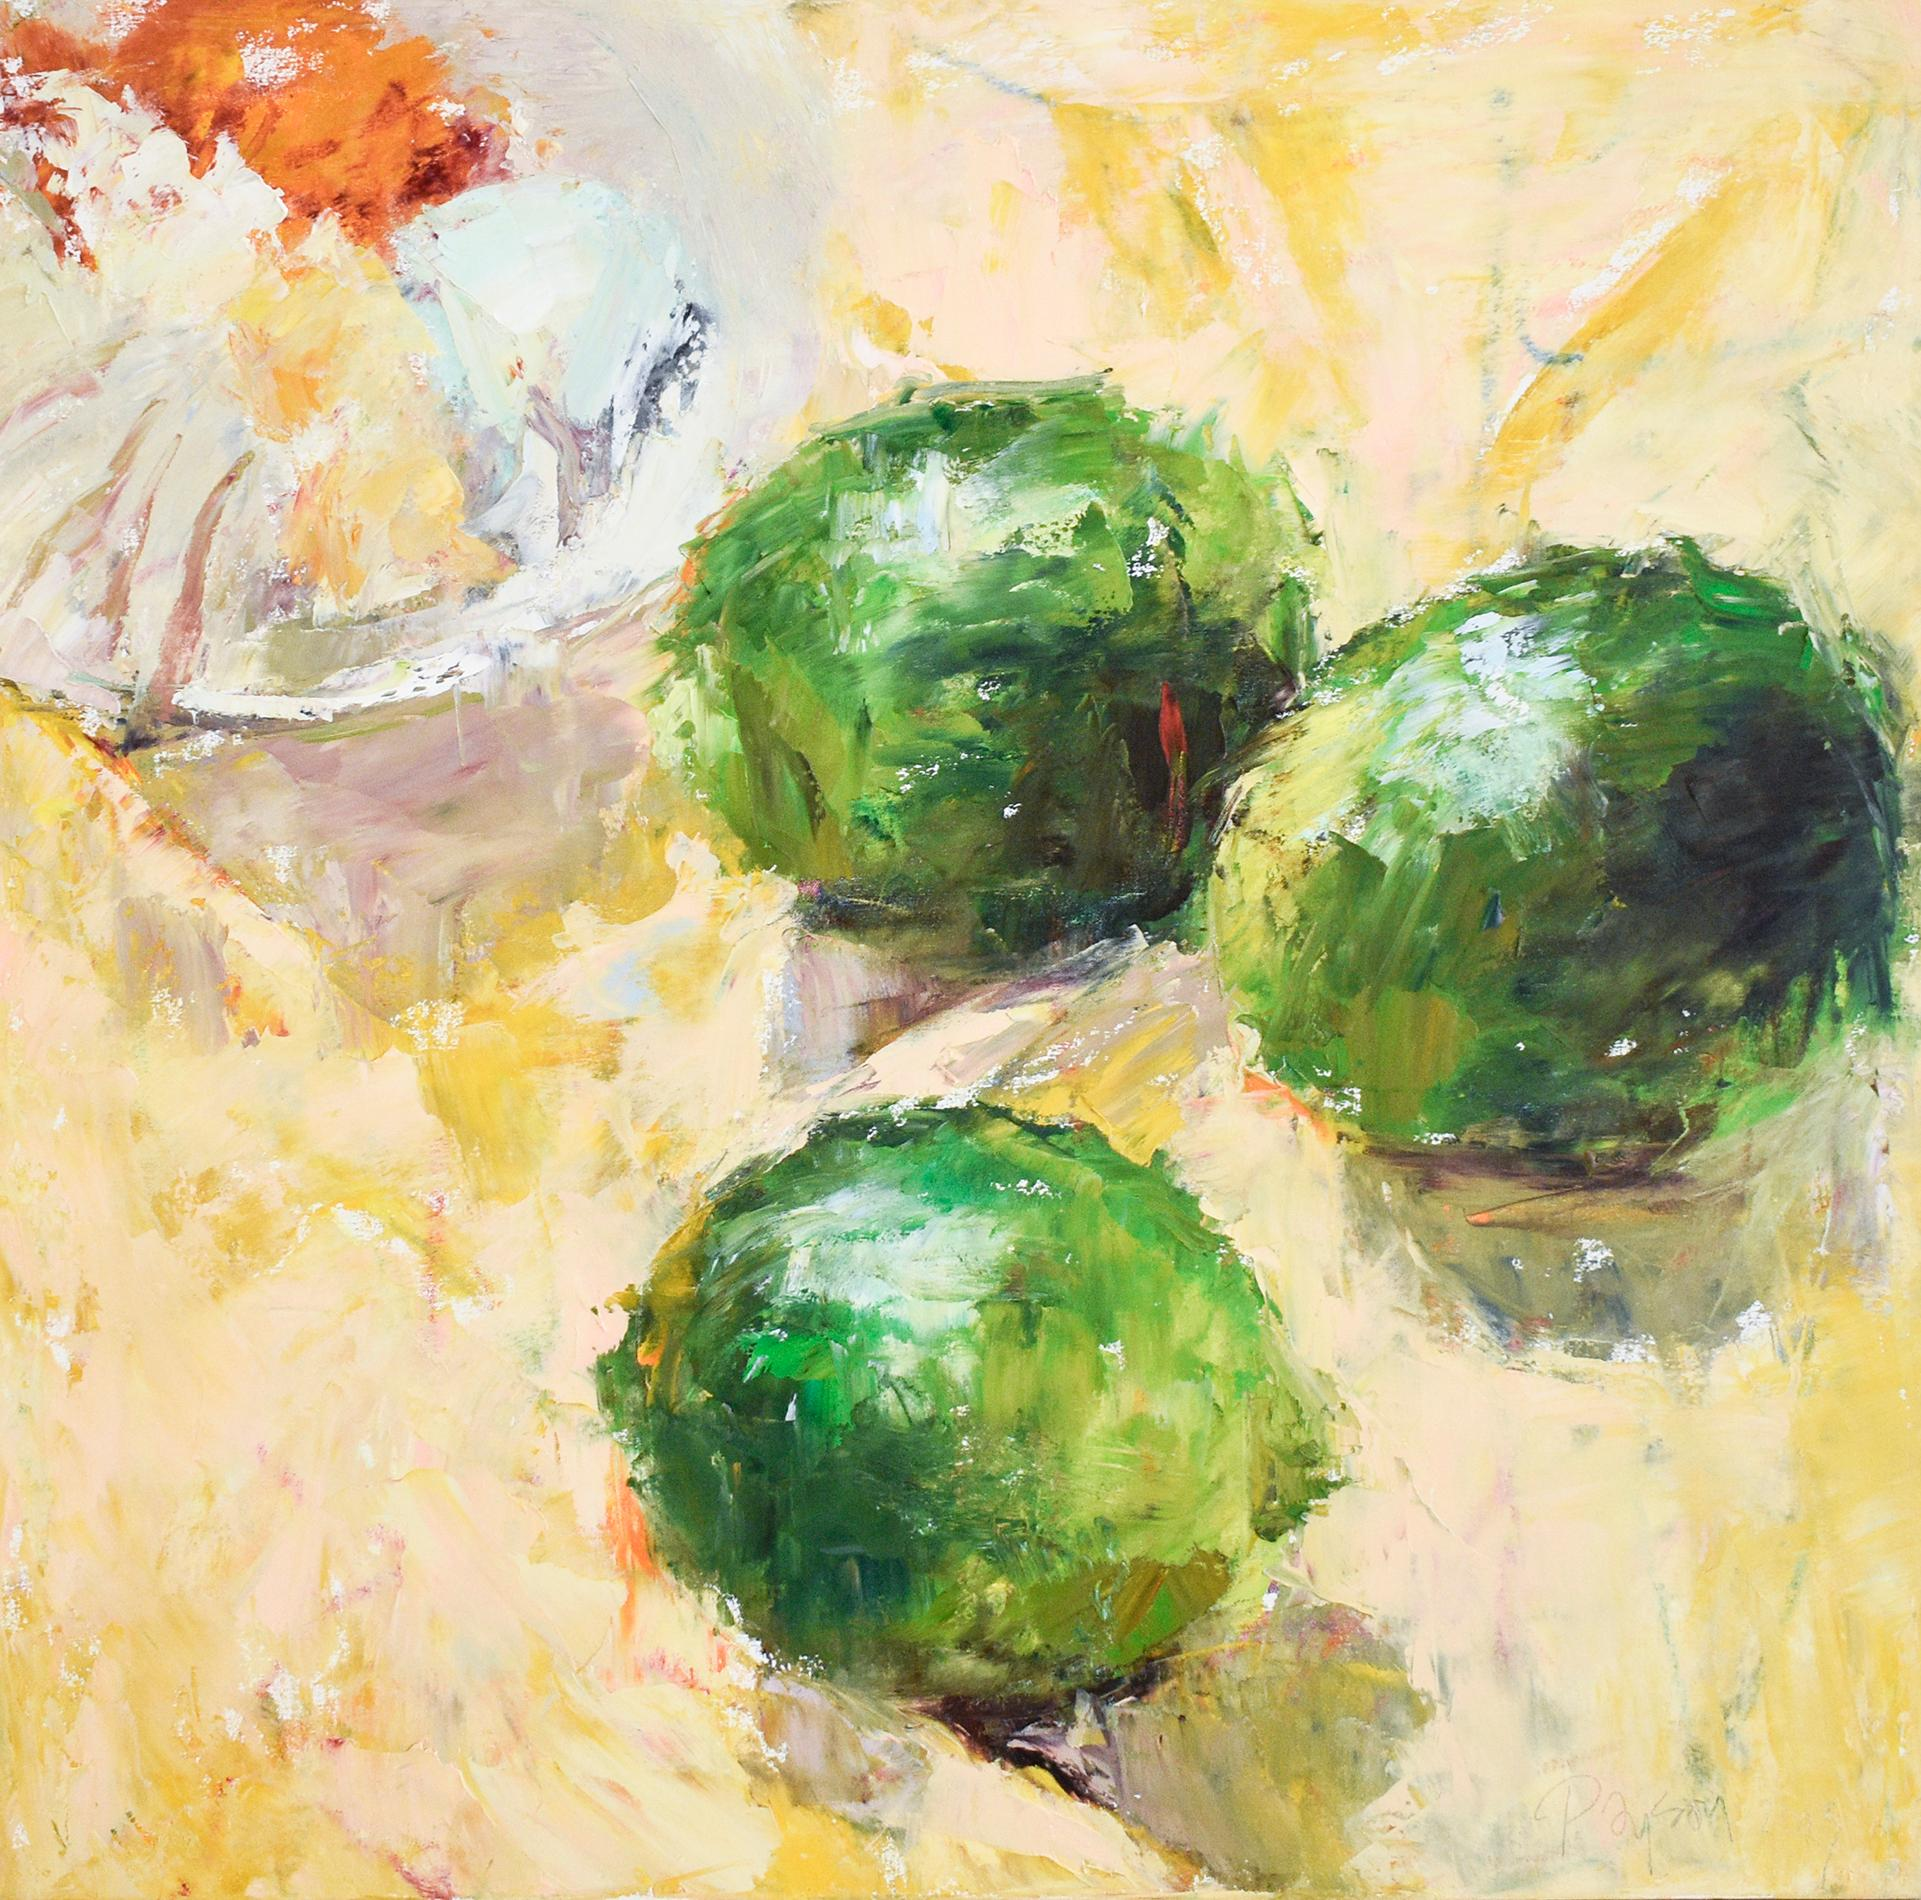 Limes (Impressionistic Still Life Painting of Green Fruit on Yellow Tablecloth)